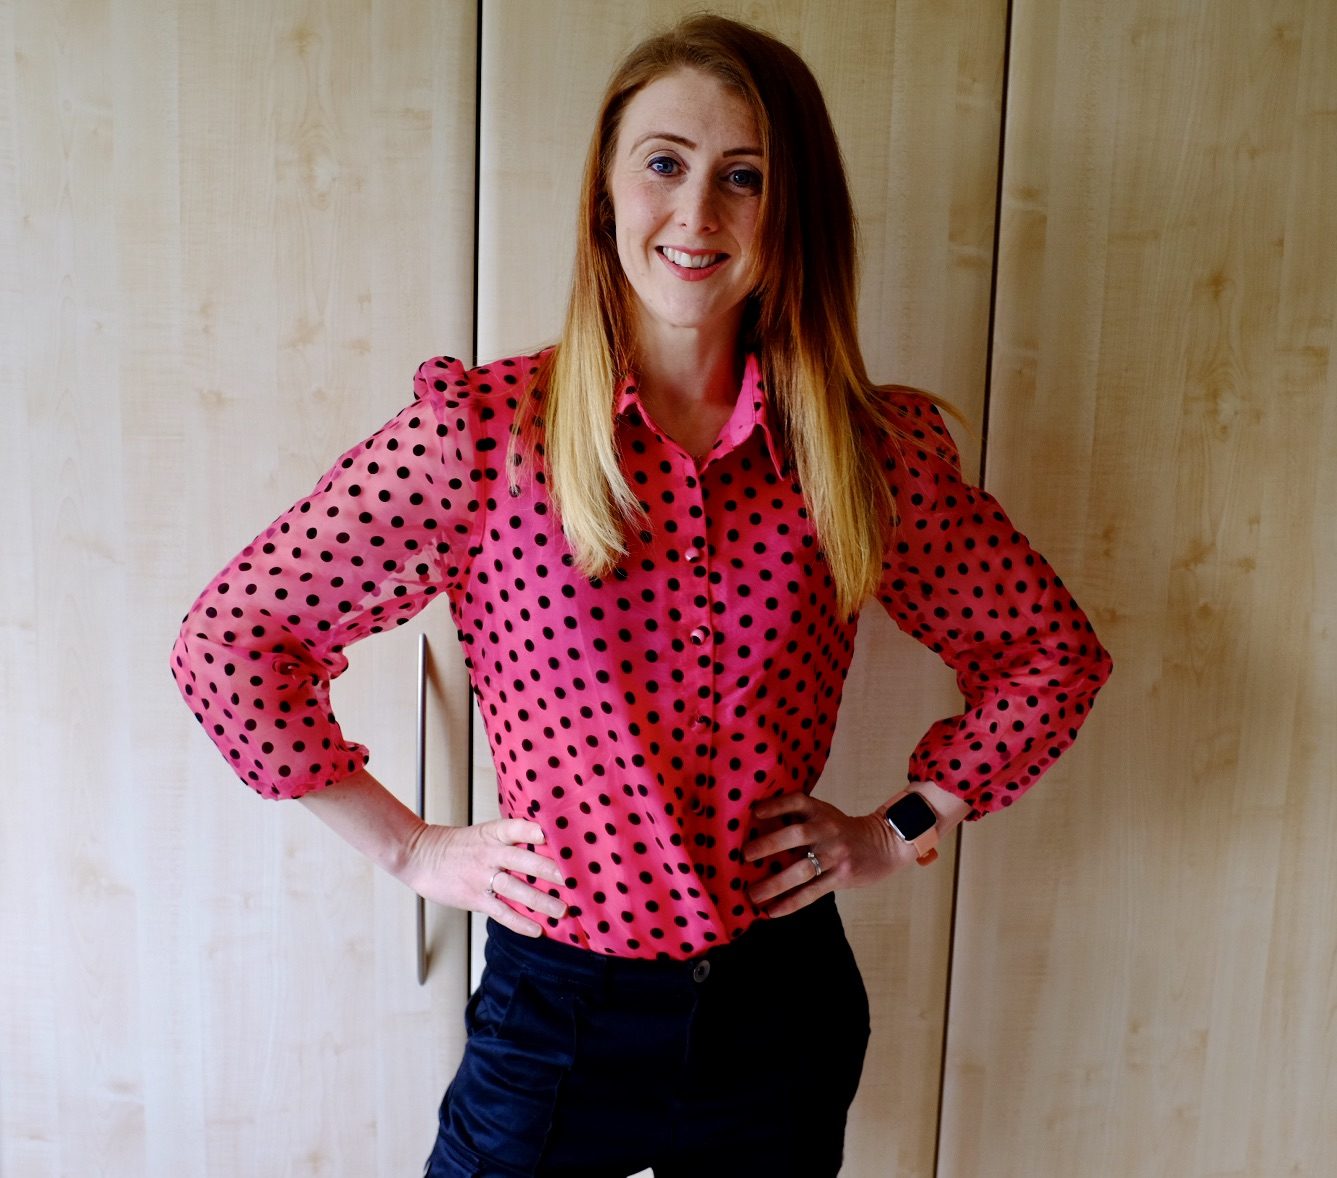 girl in polka dot red blouse